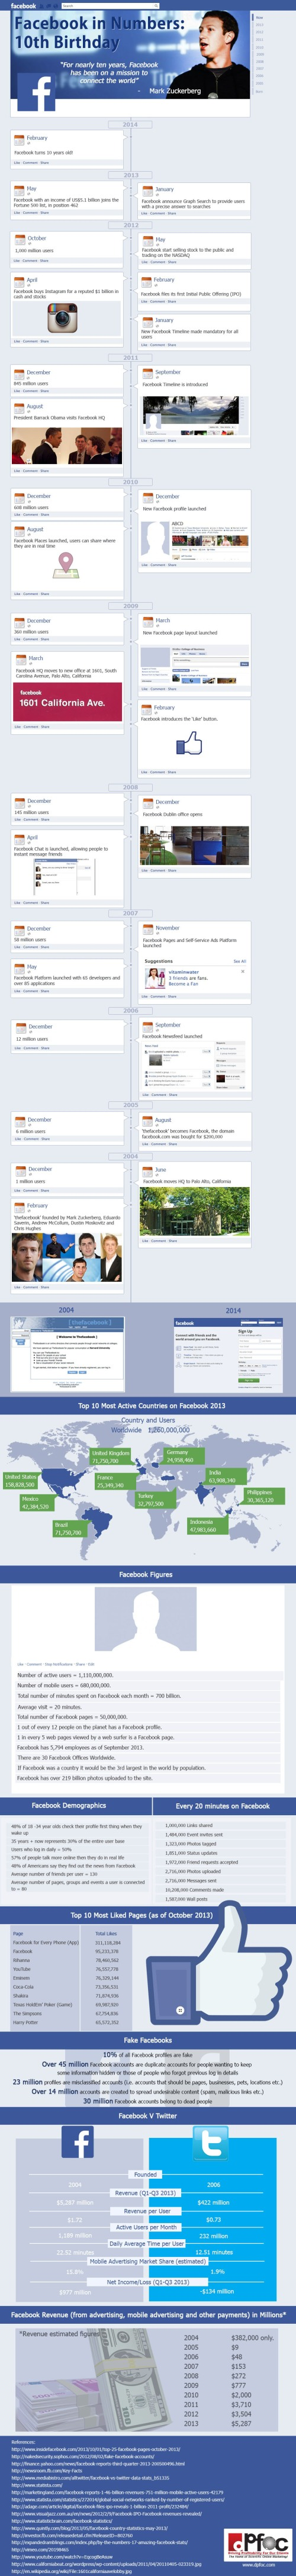 facebook-infographic2